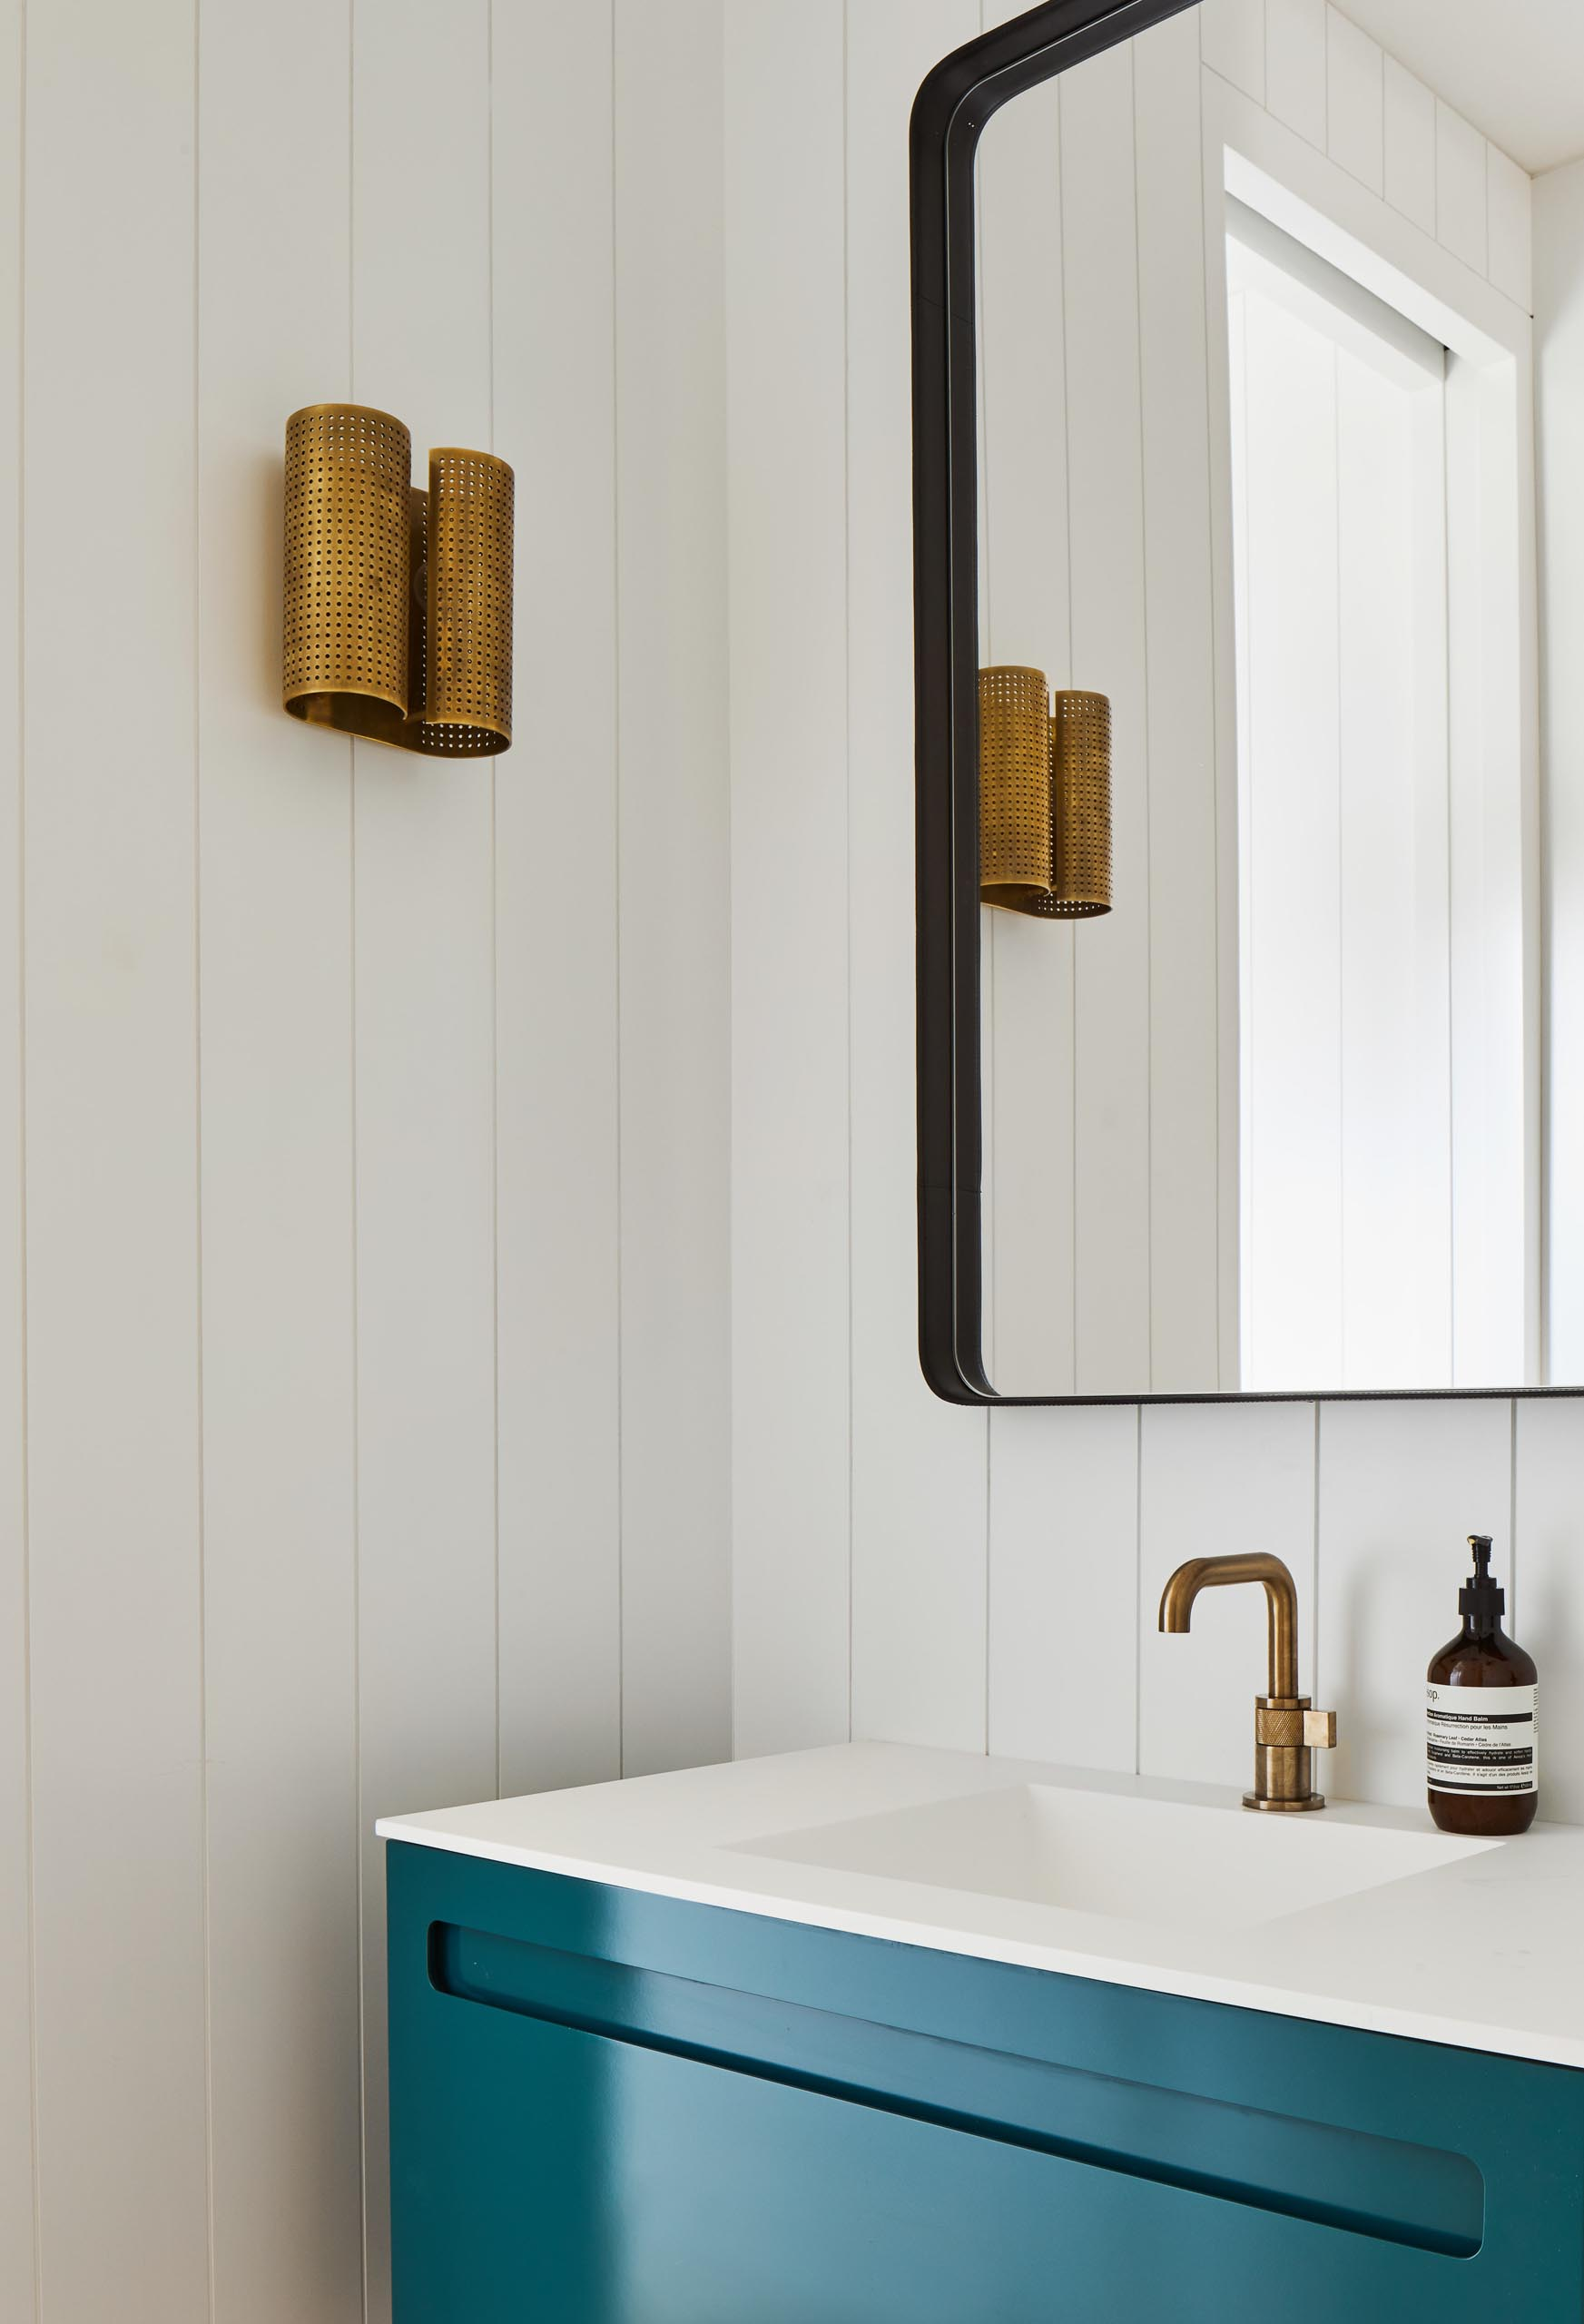 This powder room showcases a pop of color in the form of a bright blue vanity from A&F Supply in NYC, which is accented by Brizo faucet and a Kelly Wearstler sconce.